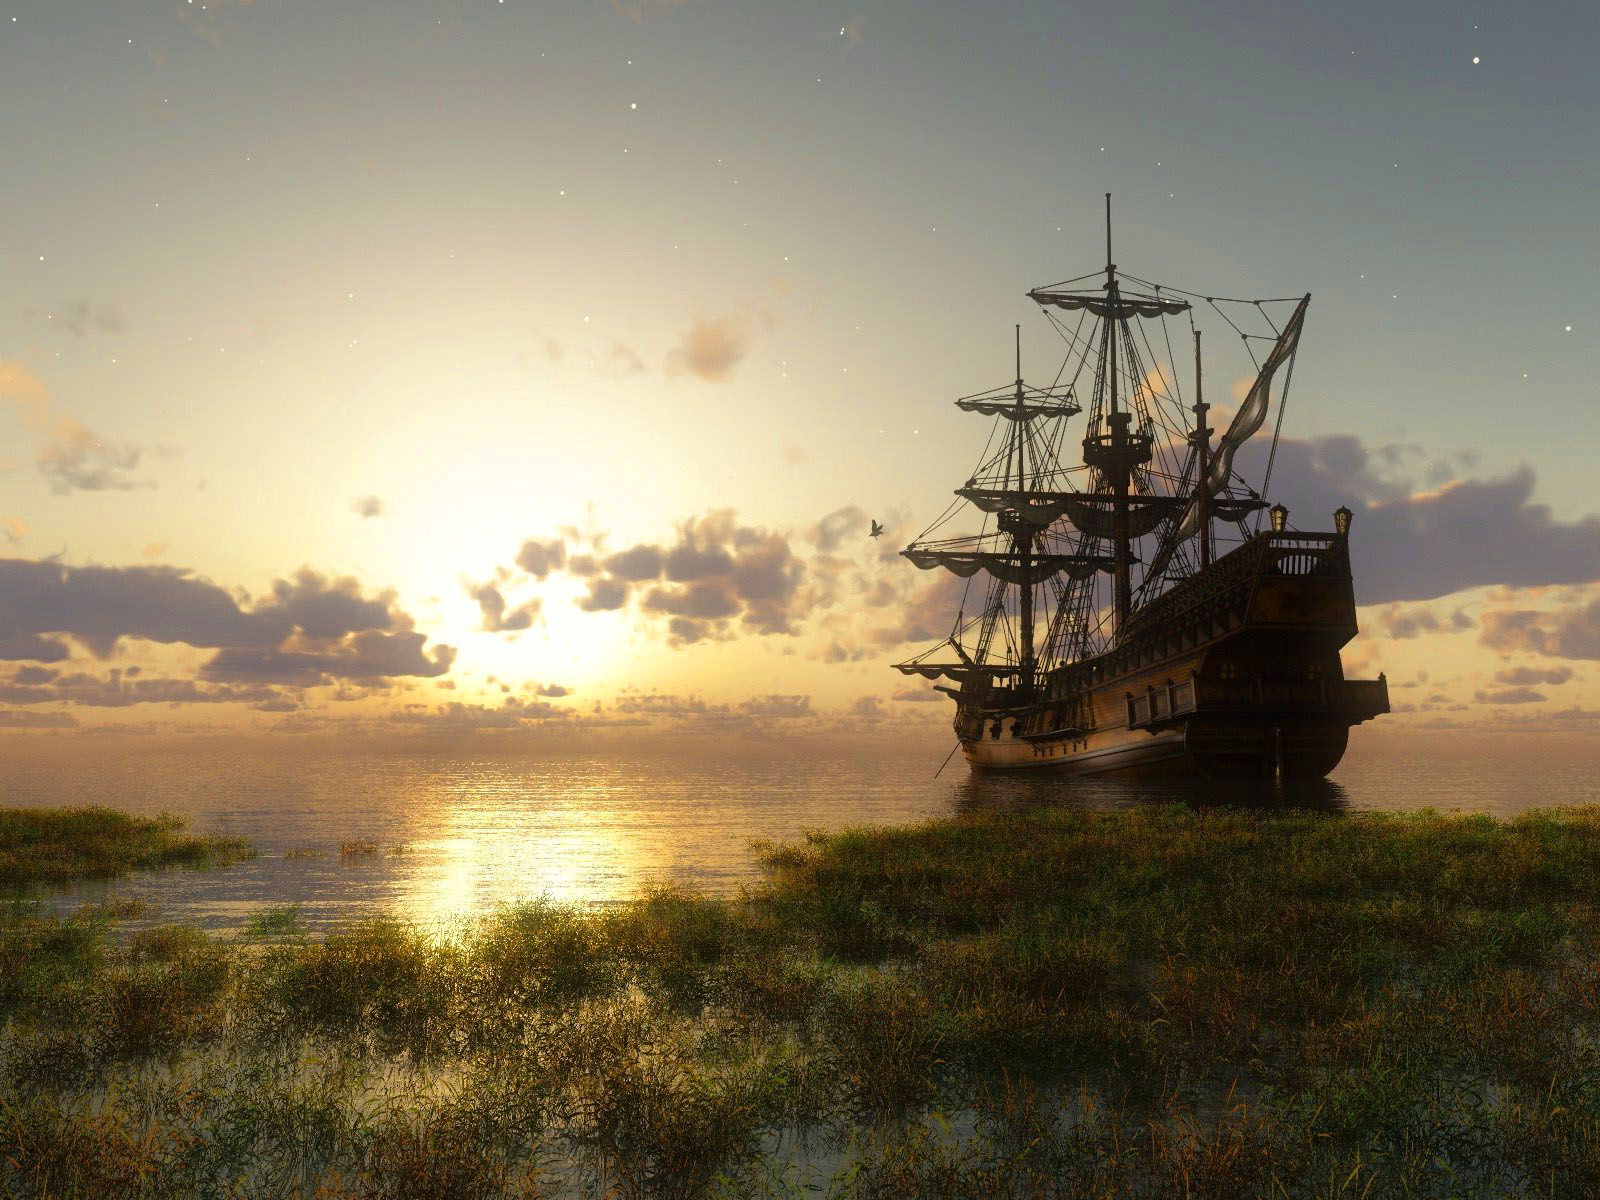 Ship Wallpaper Images in HD Available Here For Download 1600x1200